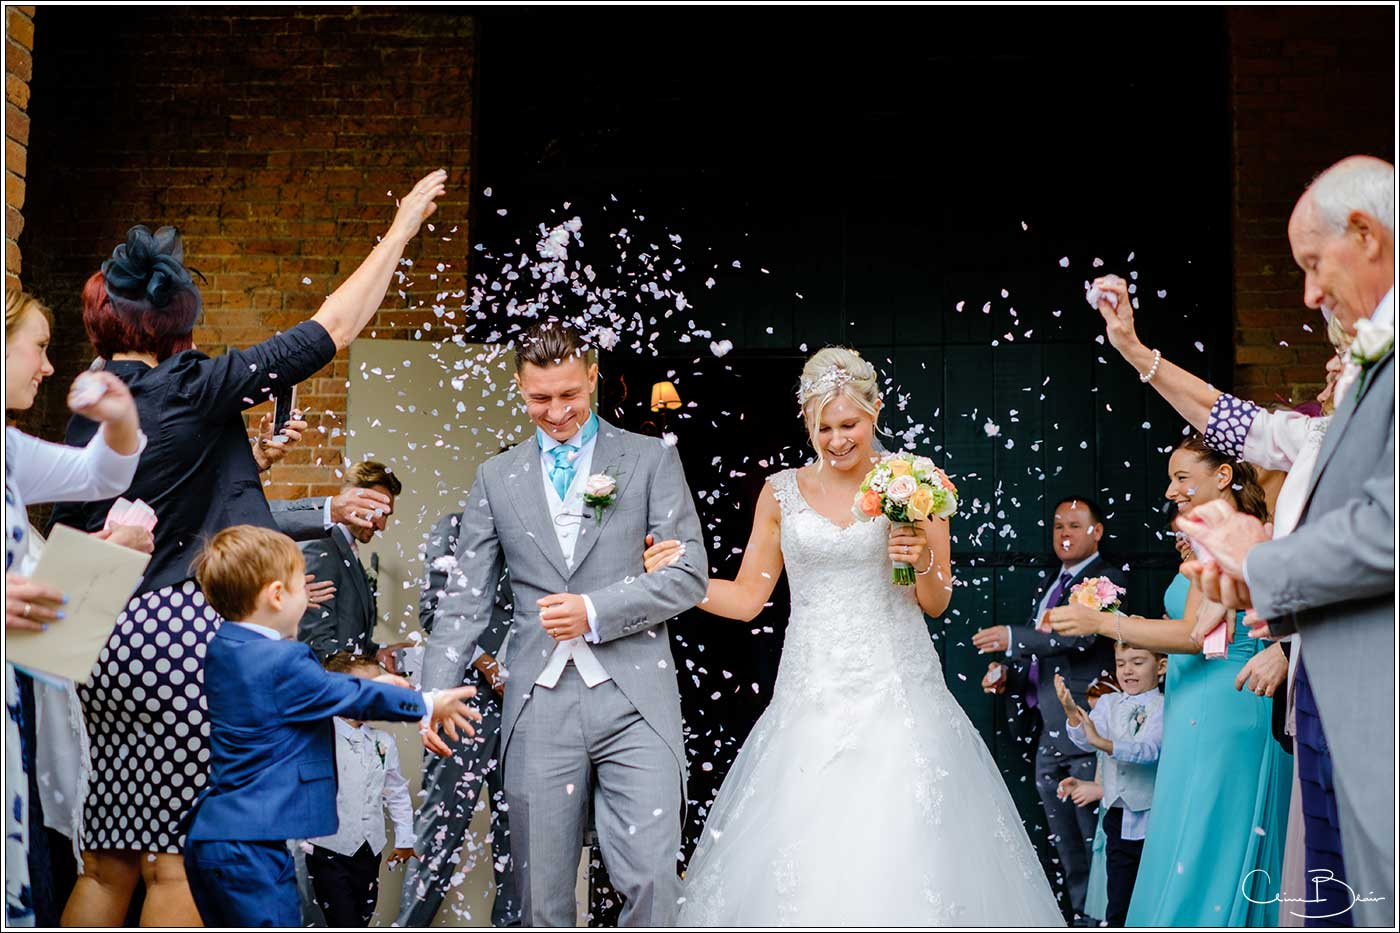 Coombe Abbey wedding photography showing bride and groom exiting abbey gate under confetti